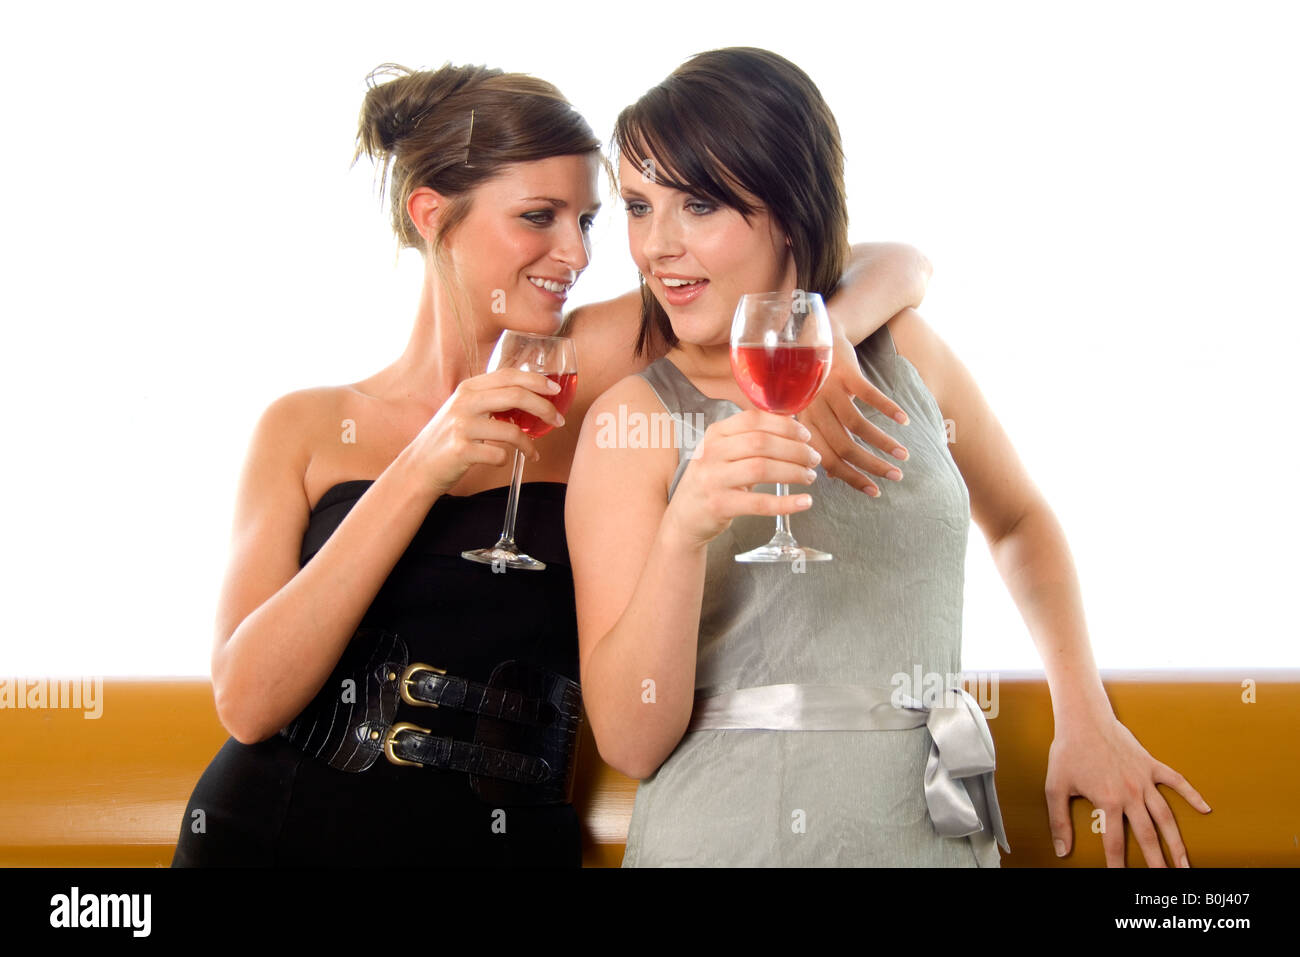 drunk girls drunk girls - Stock Image